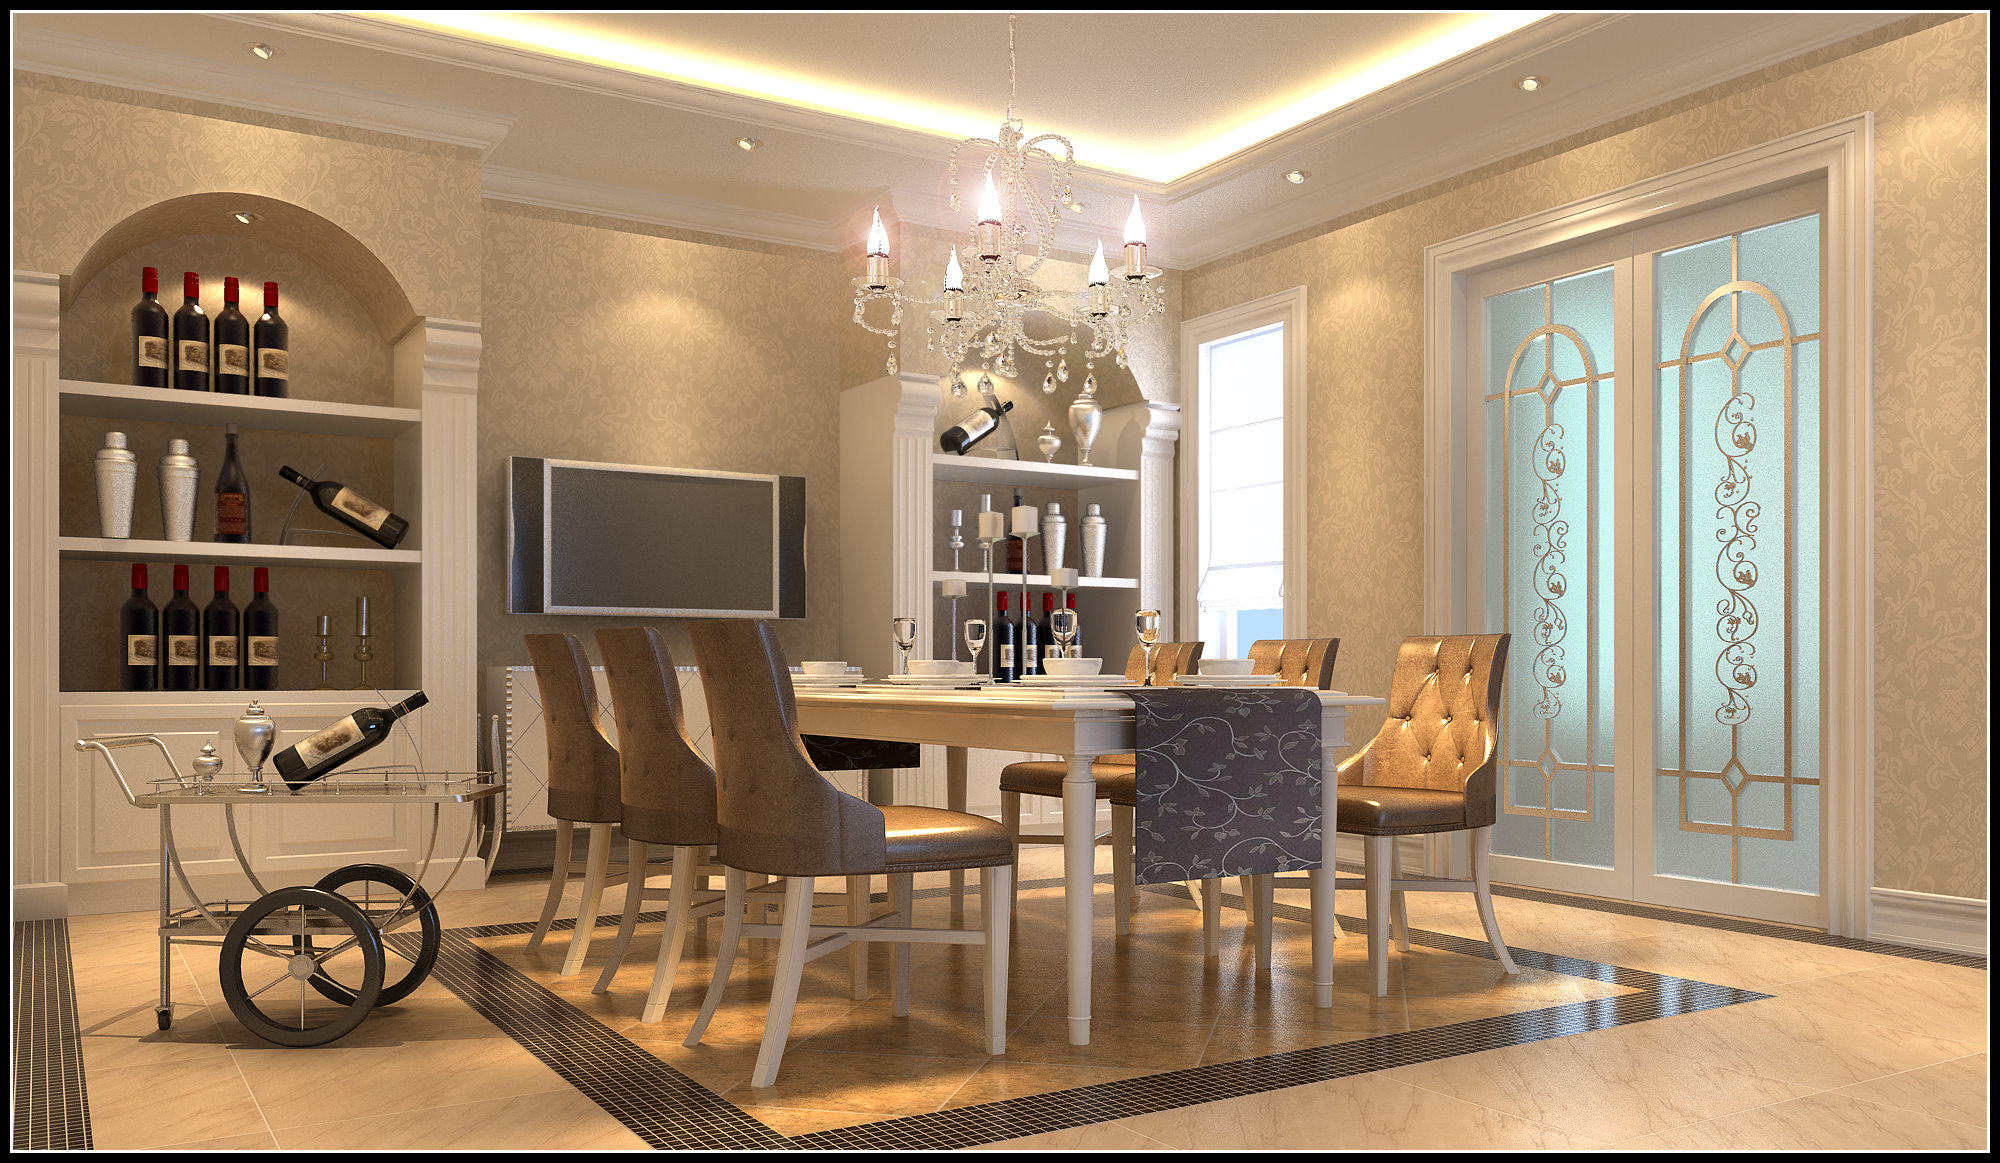 Luxurious Dining Room With Marble Floor Fully Furnished 3d Model Max 1